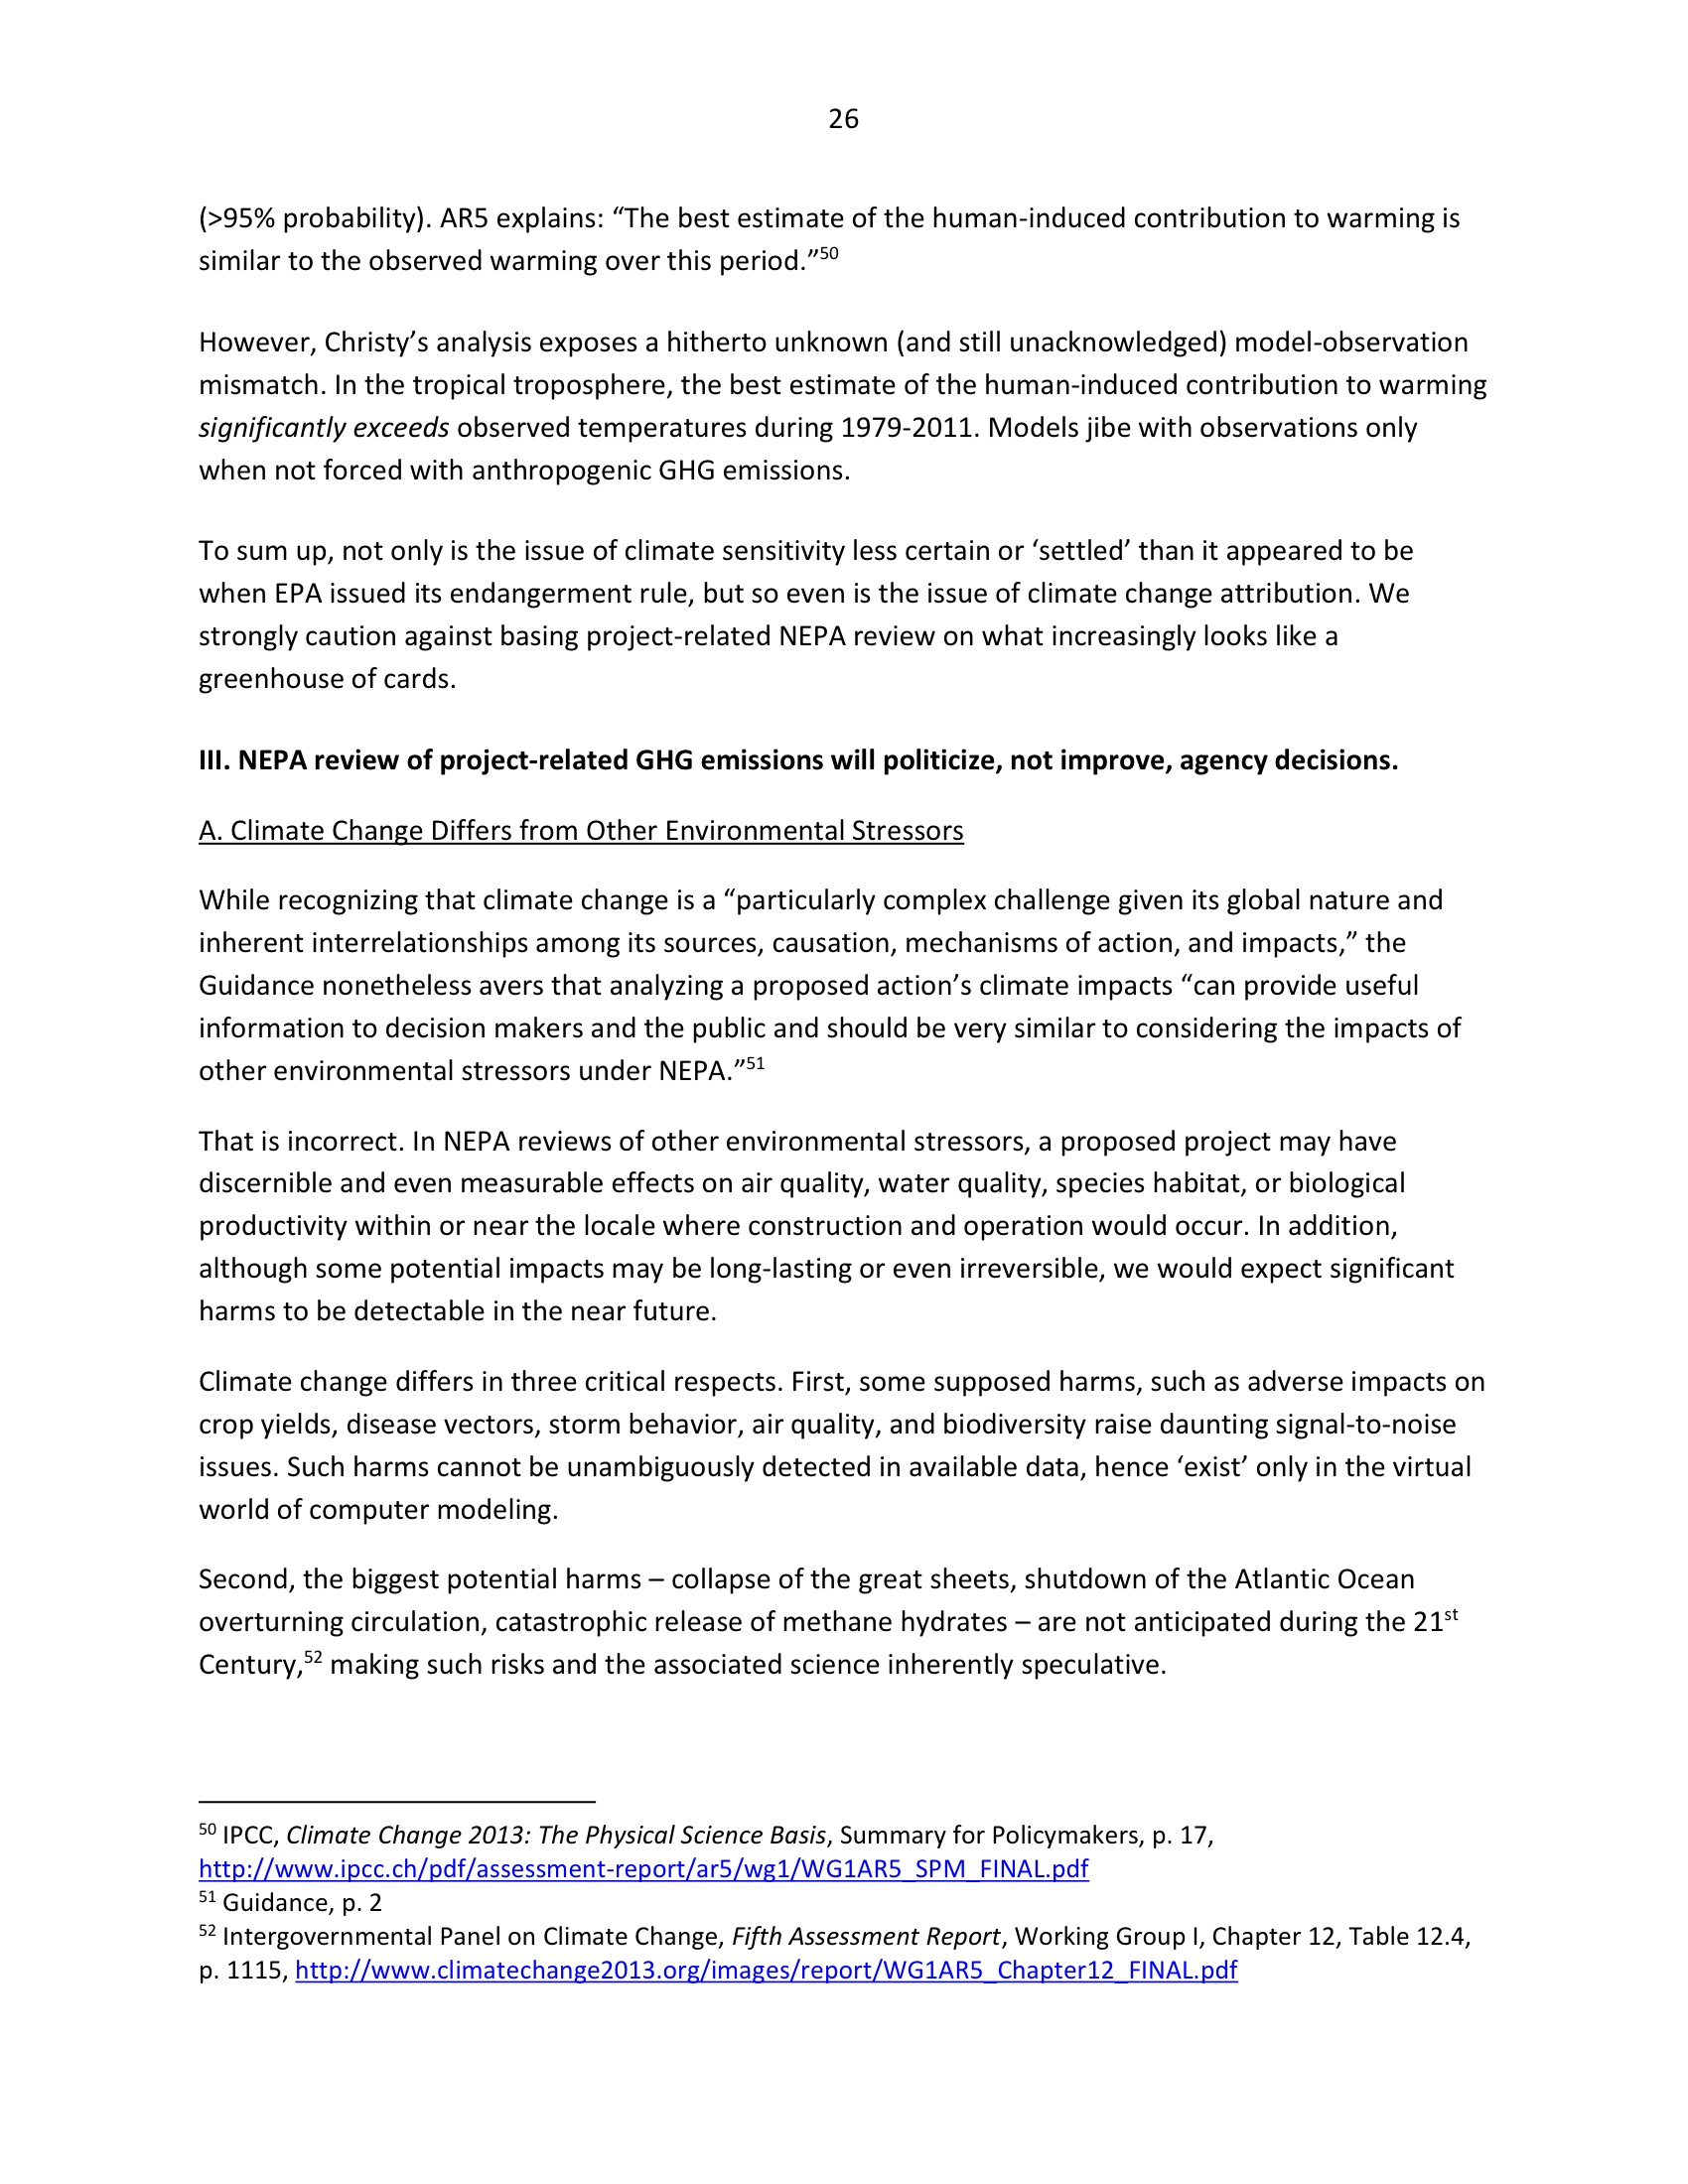 Marlo Lewis Competitive Enterprise Institute and Free Market Allies Comment Letter on NEPA GHG Guidance Document 98-26